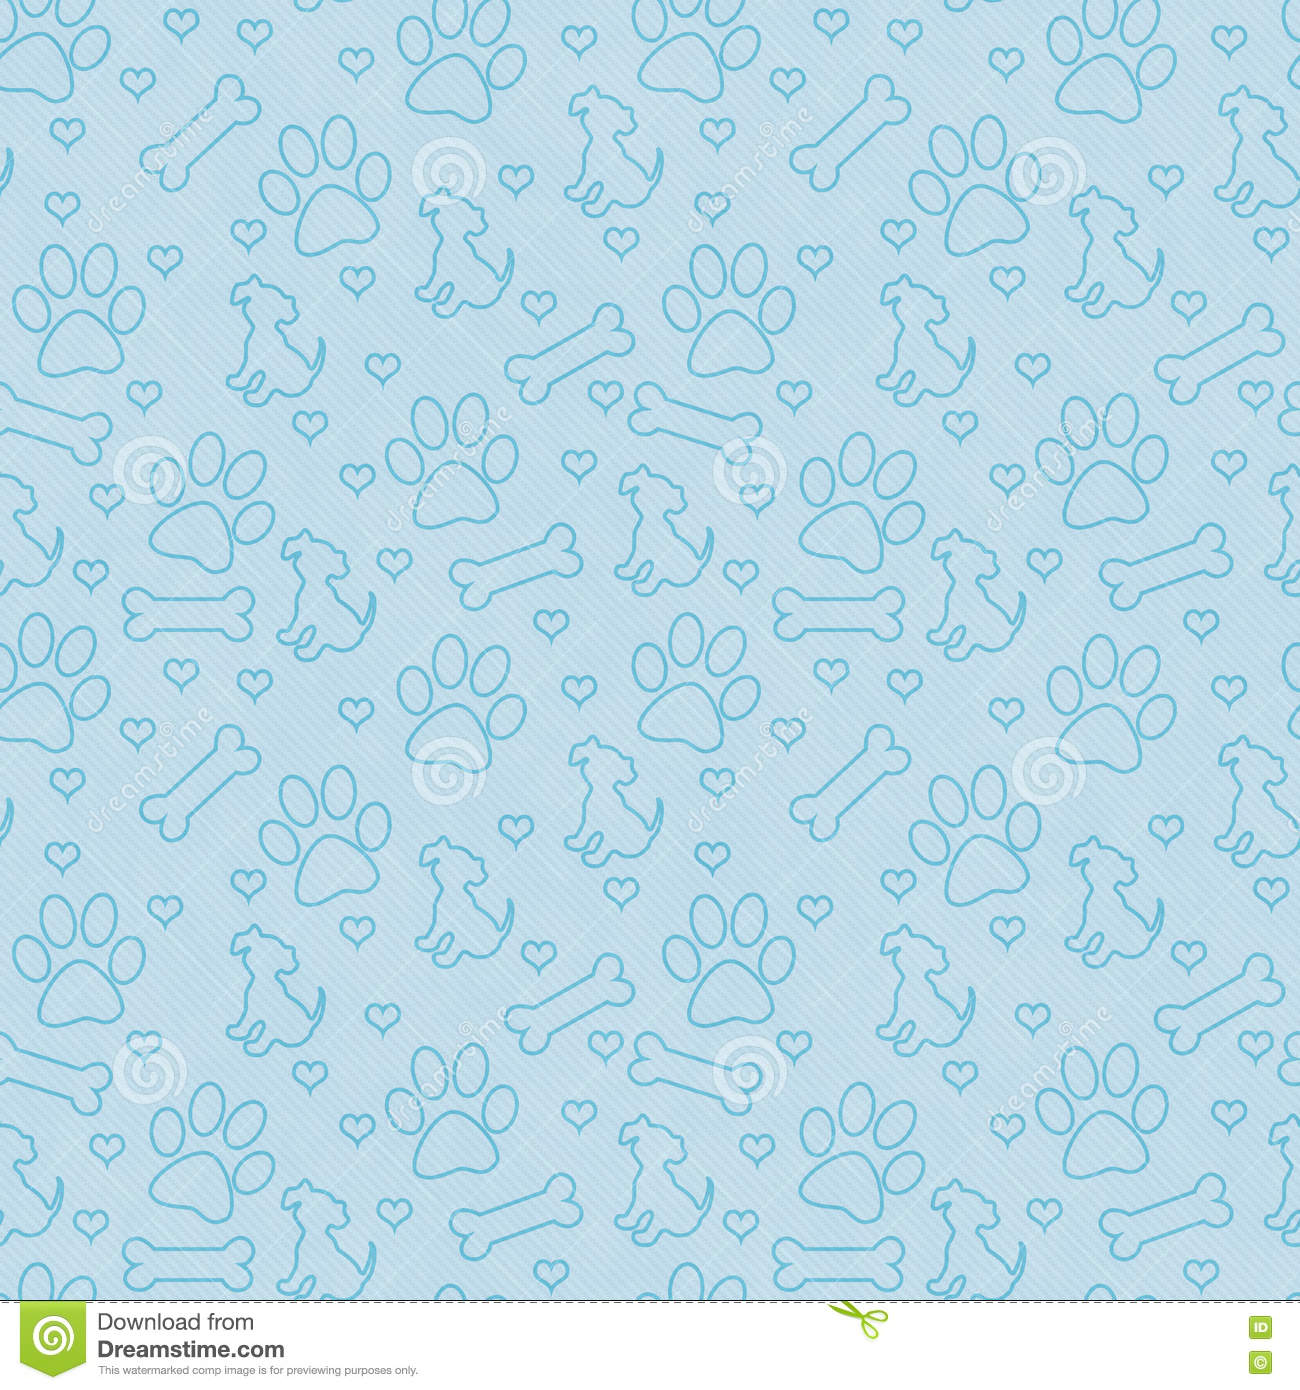 Blue Doggy Tile Pattern Repeat Background